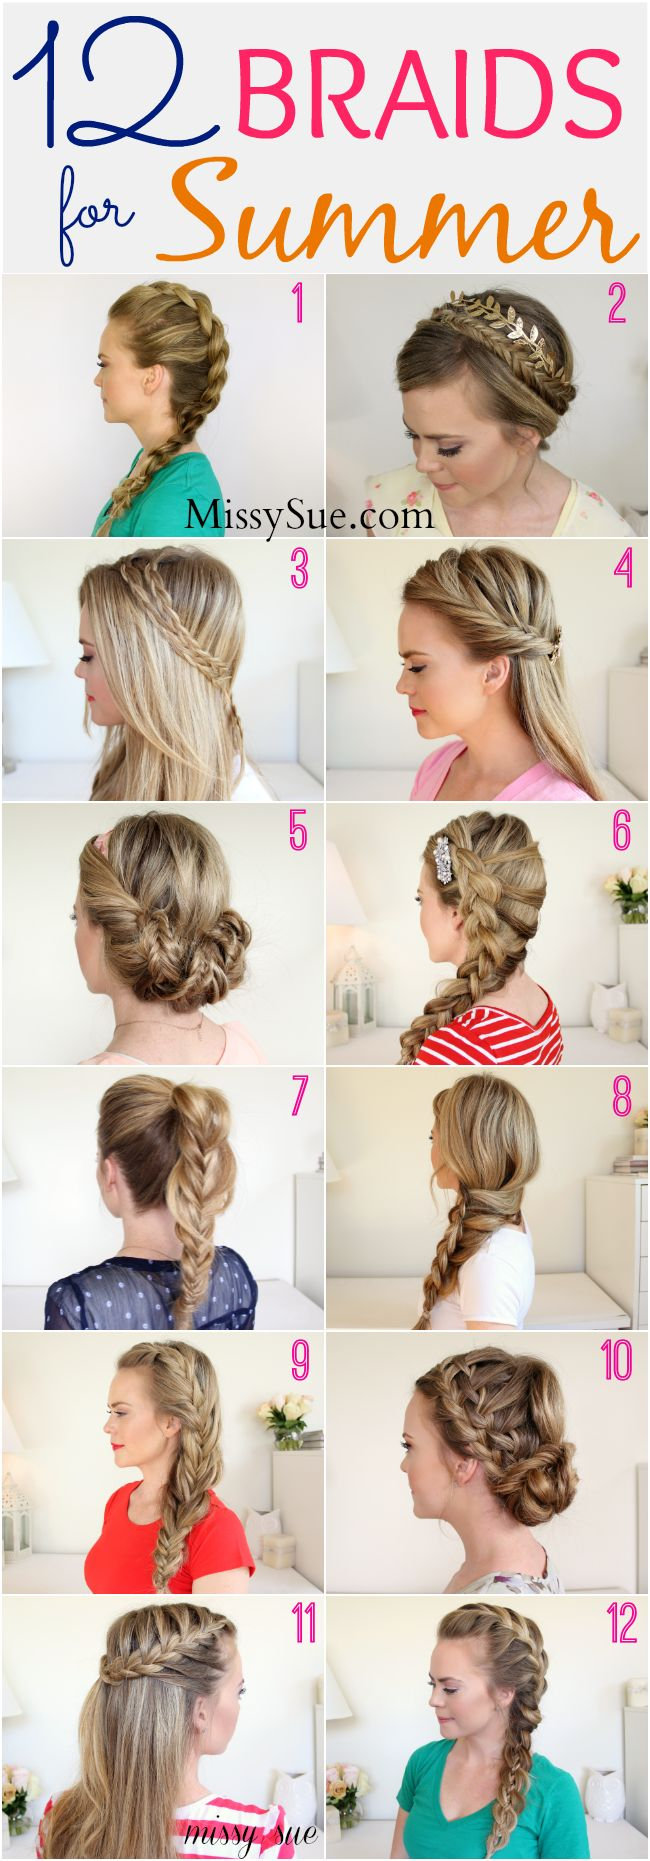 Astounding 1000 Images About Hairstyles For Little Girls On Pinterest Girl Hairstyle Inspiration Daily Dogsangcom